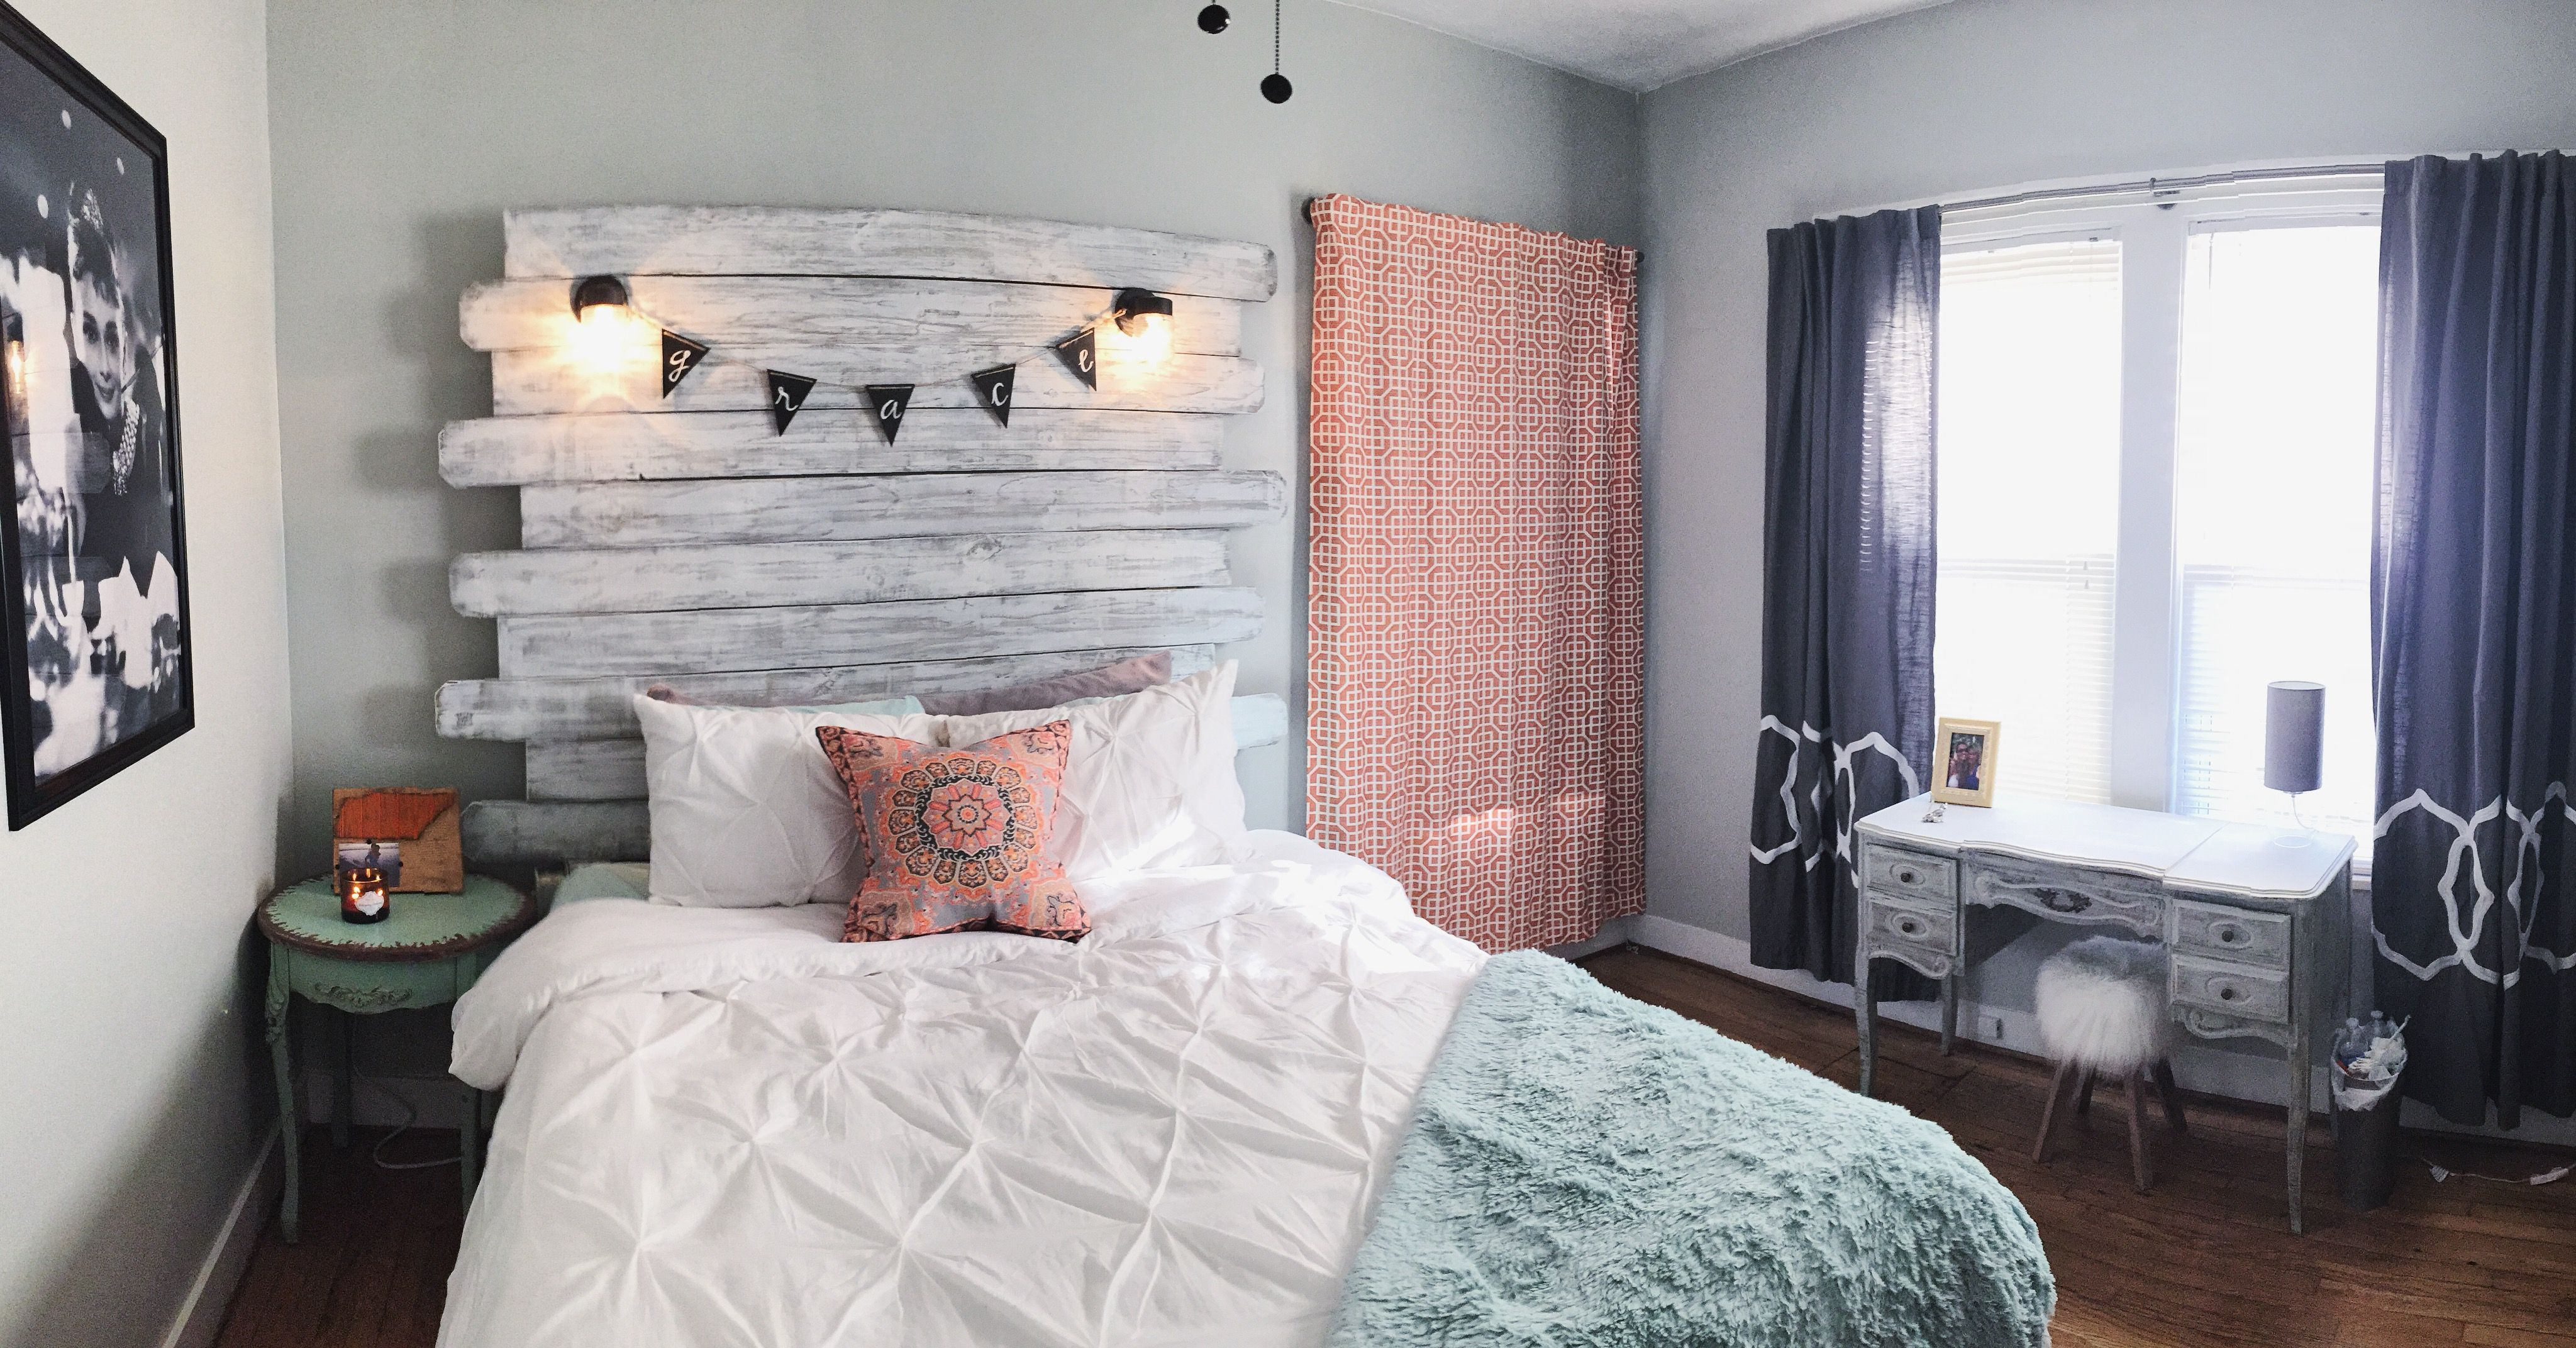 My Room In Knoxville Tn This School Year Handmade Headboard And